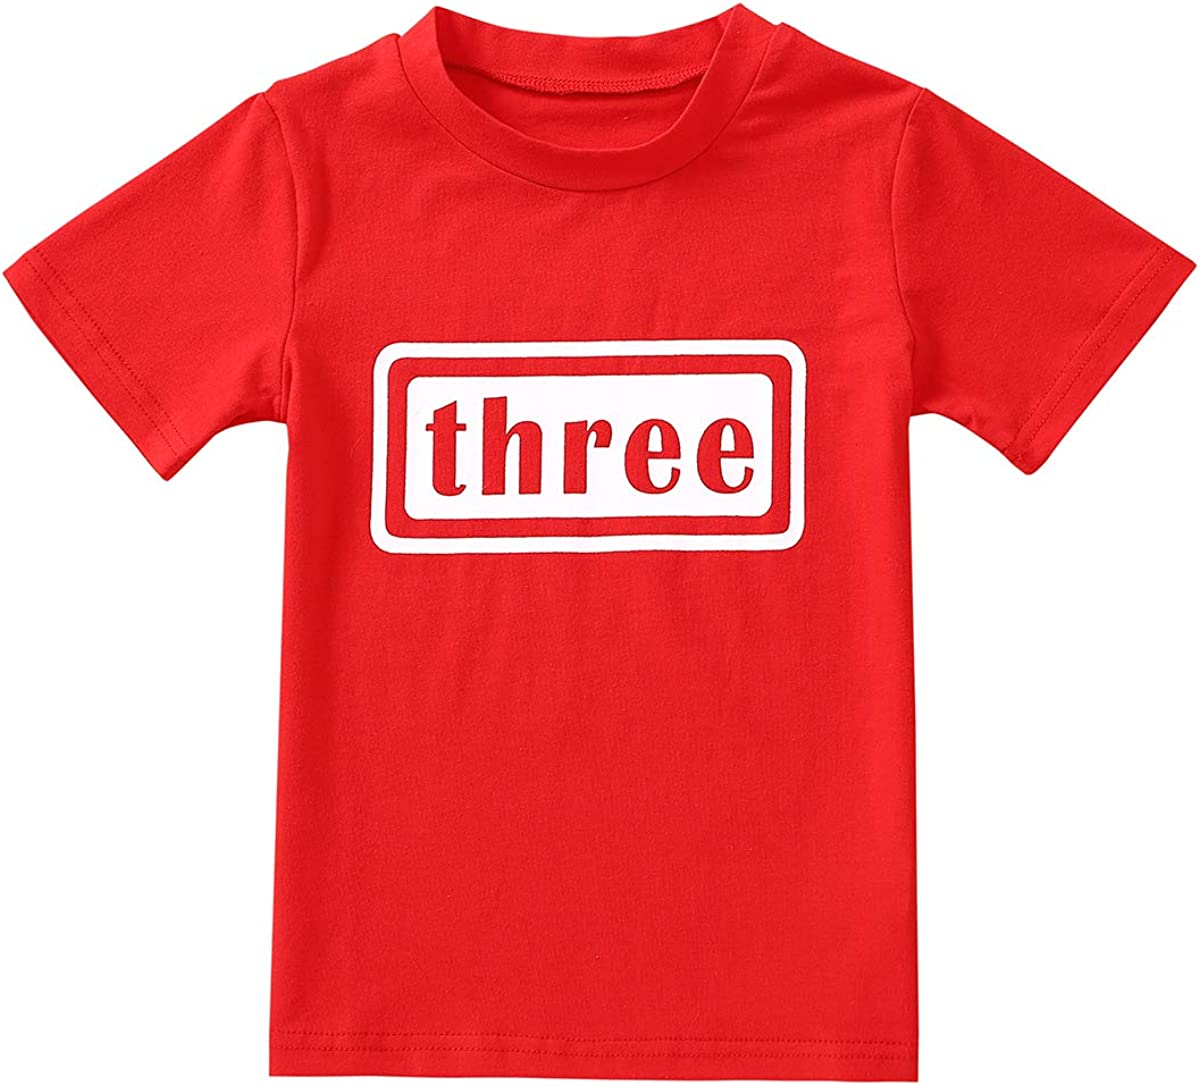 3rd Birthday Shirt Kid Toddler Boy Outfit 3 Year Old T-Shirt Baby Third Tees Top Summer Blouse Clothes